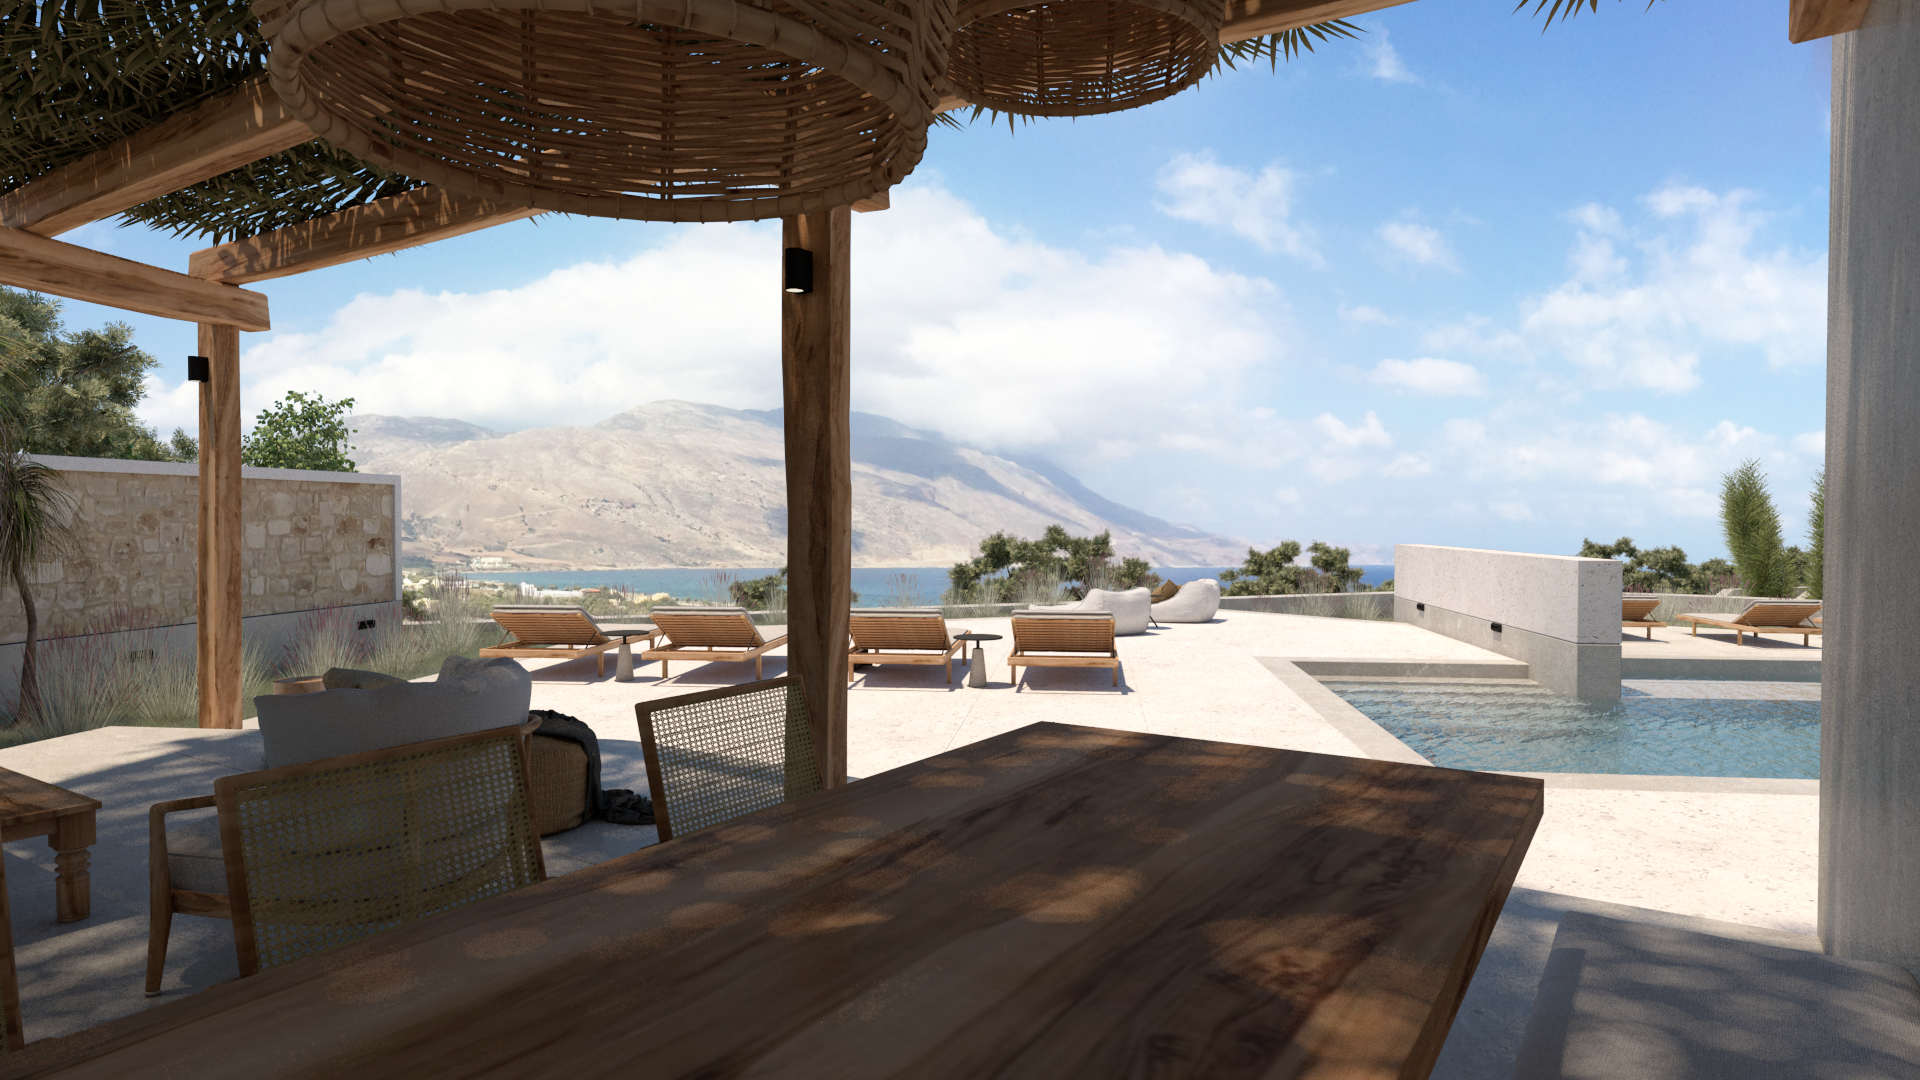 holiday homes renovation,exterior design, outdoor spaces, living space, ανακαίνιση παραθεριστικικών κατοικιών, εξωτερικοί χώροι, καθιστικό